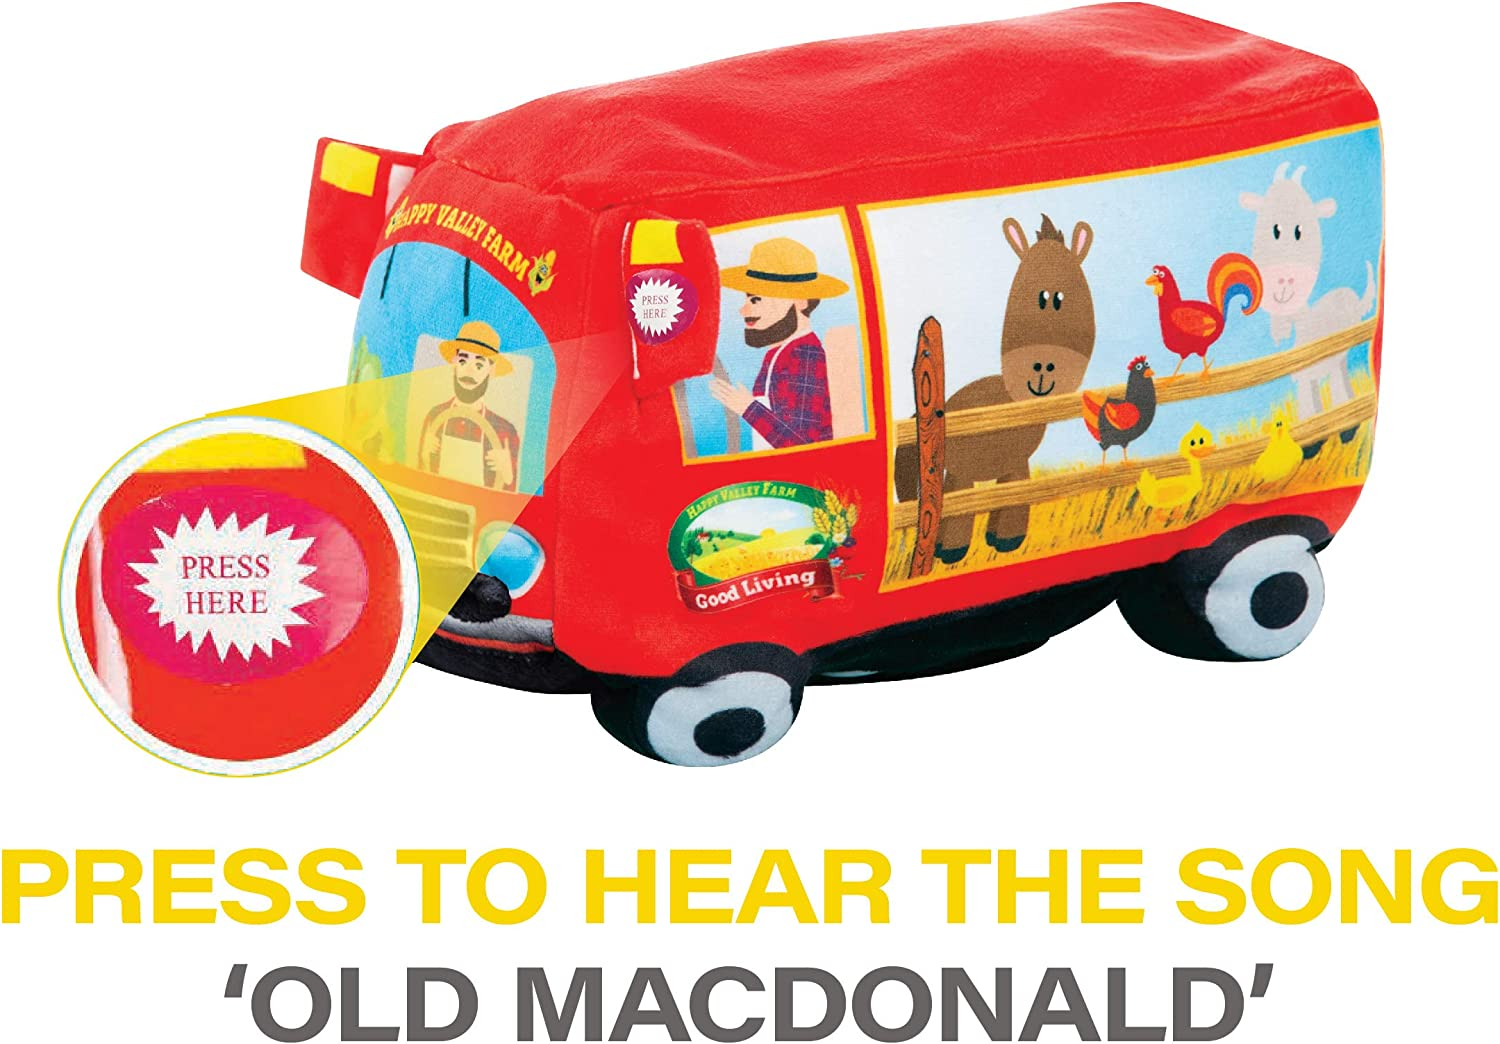 6 Months + This Sing Along Farm Truck Plays Old Macdonald Fun Toys for Toddlers Etna Plush Singing Old Macdonald Had A Farm Toy Dances and Lights Up to The Music